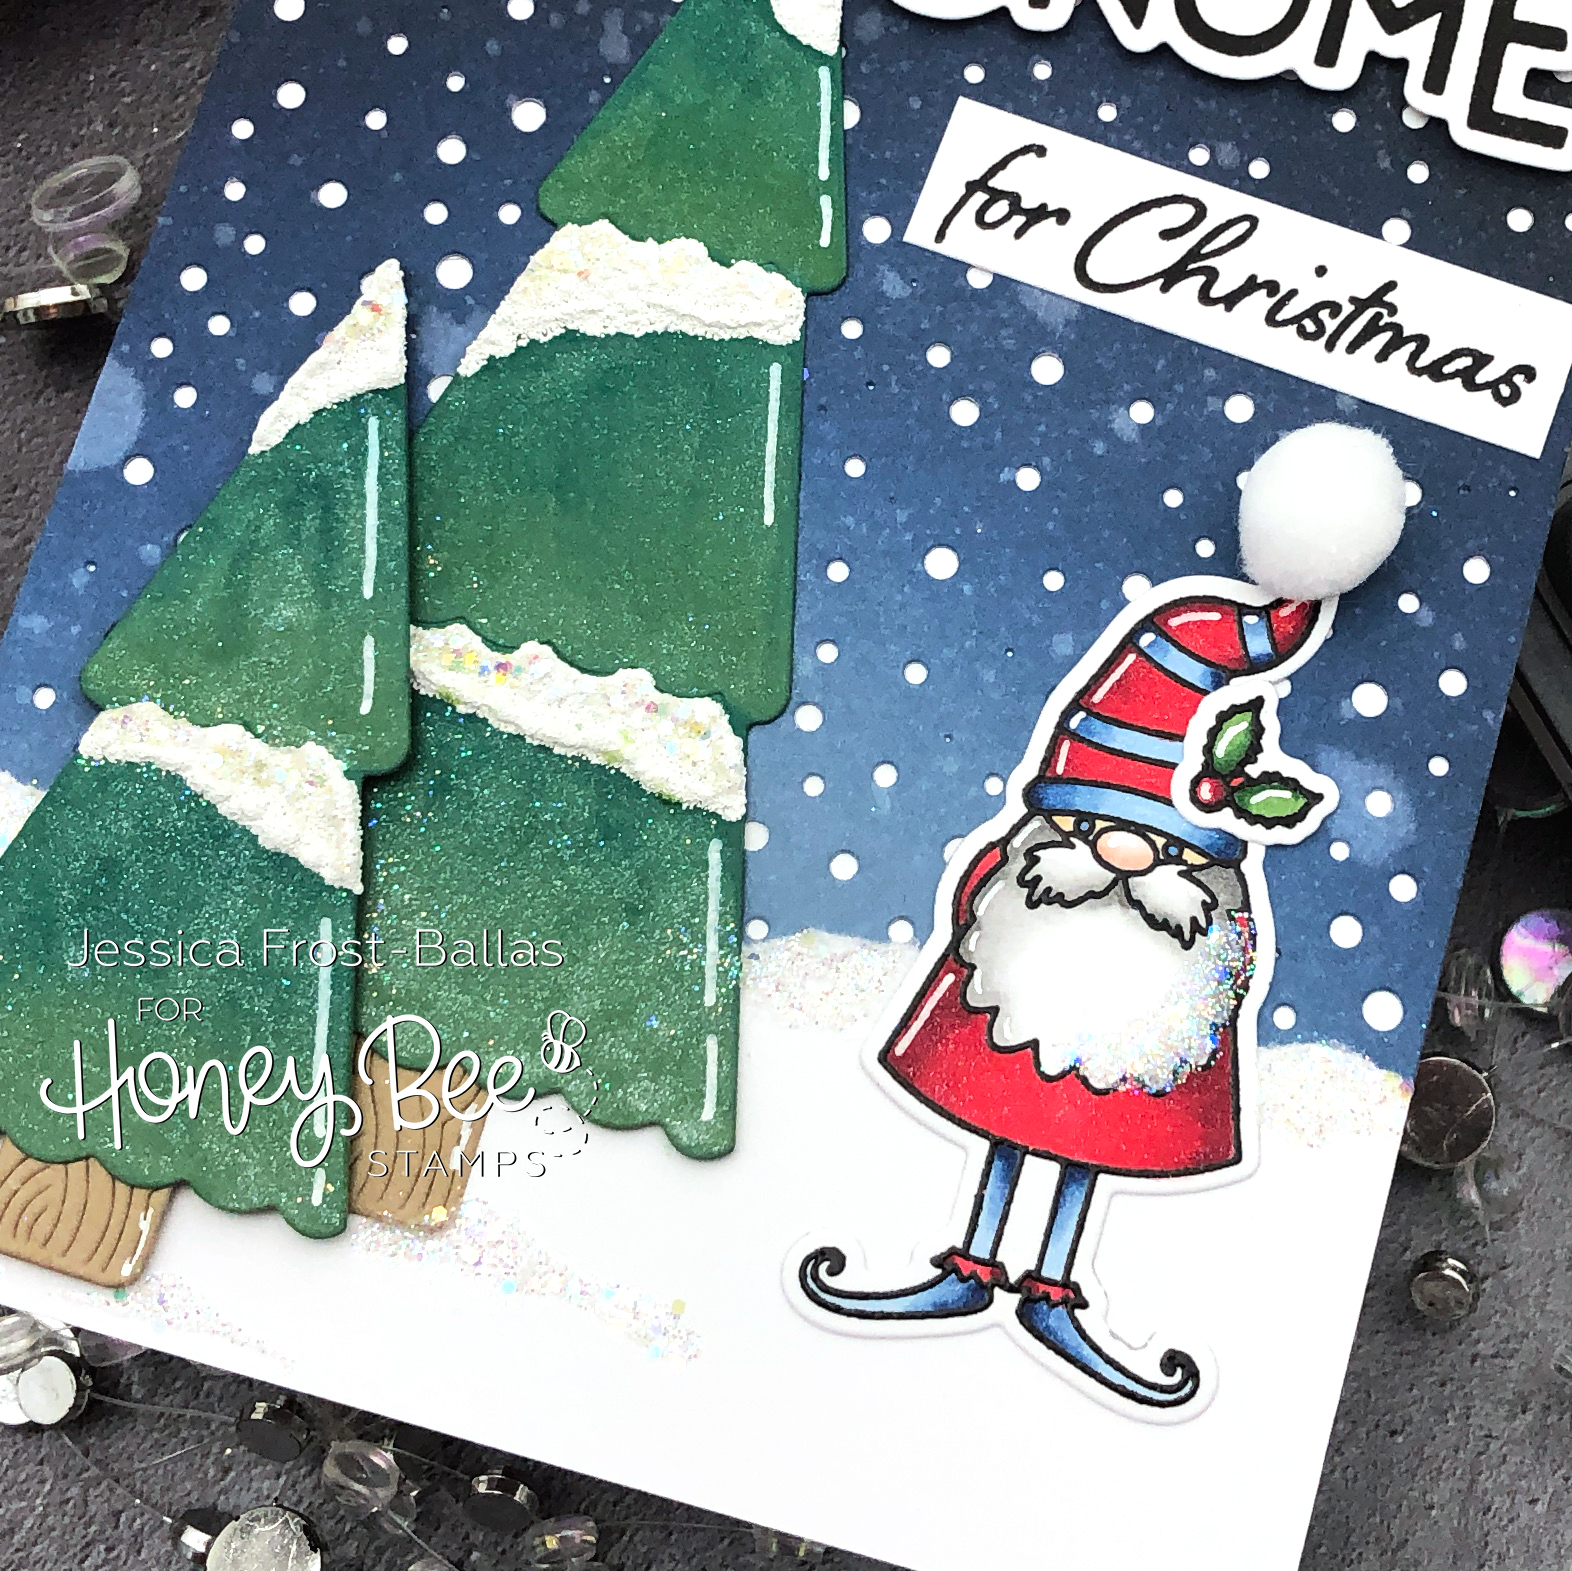 I'll be Gnome for Christmas by Jessica Frost-Ballas for Honeybee Stamps